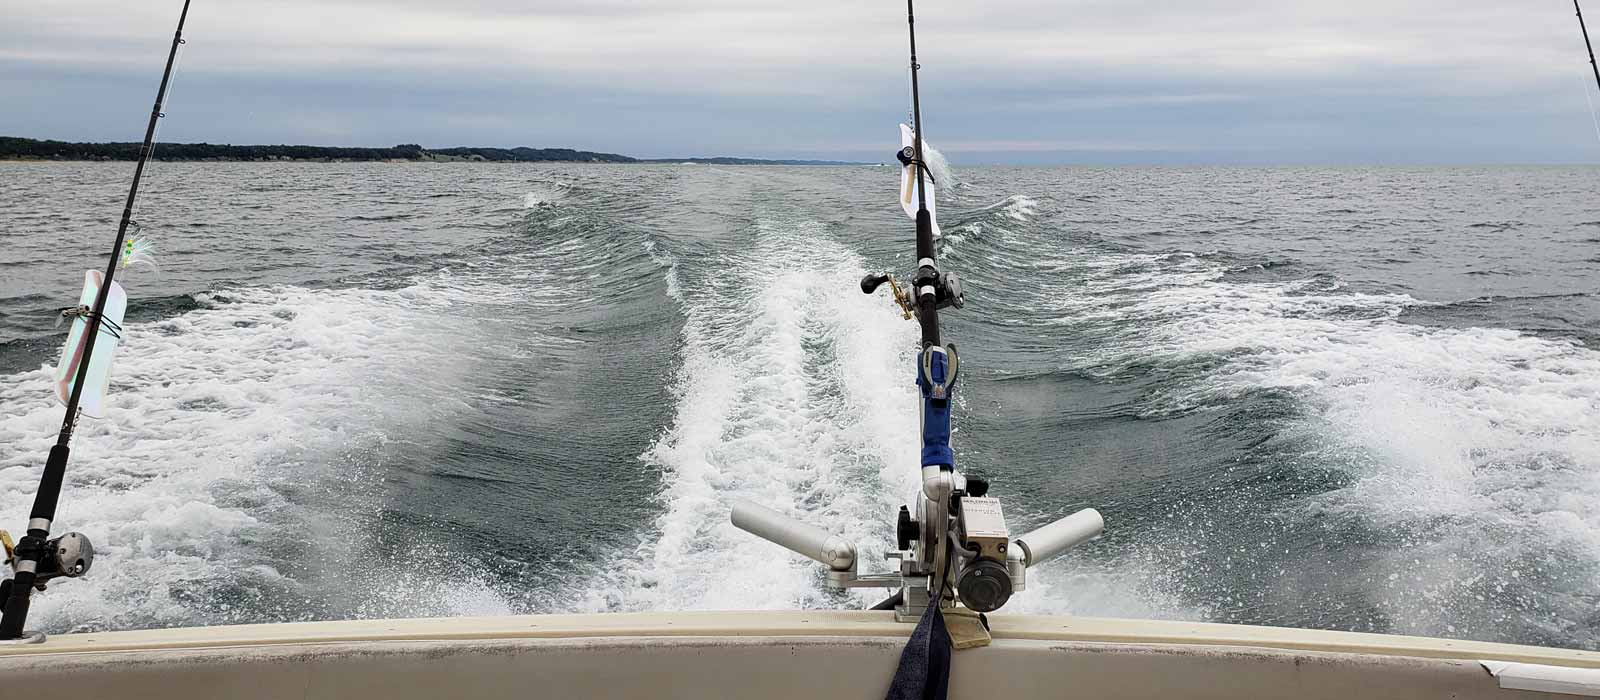 Wake from Fishing Boat